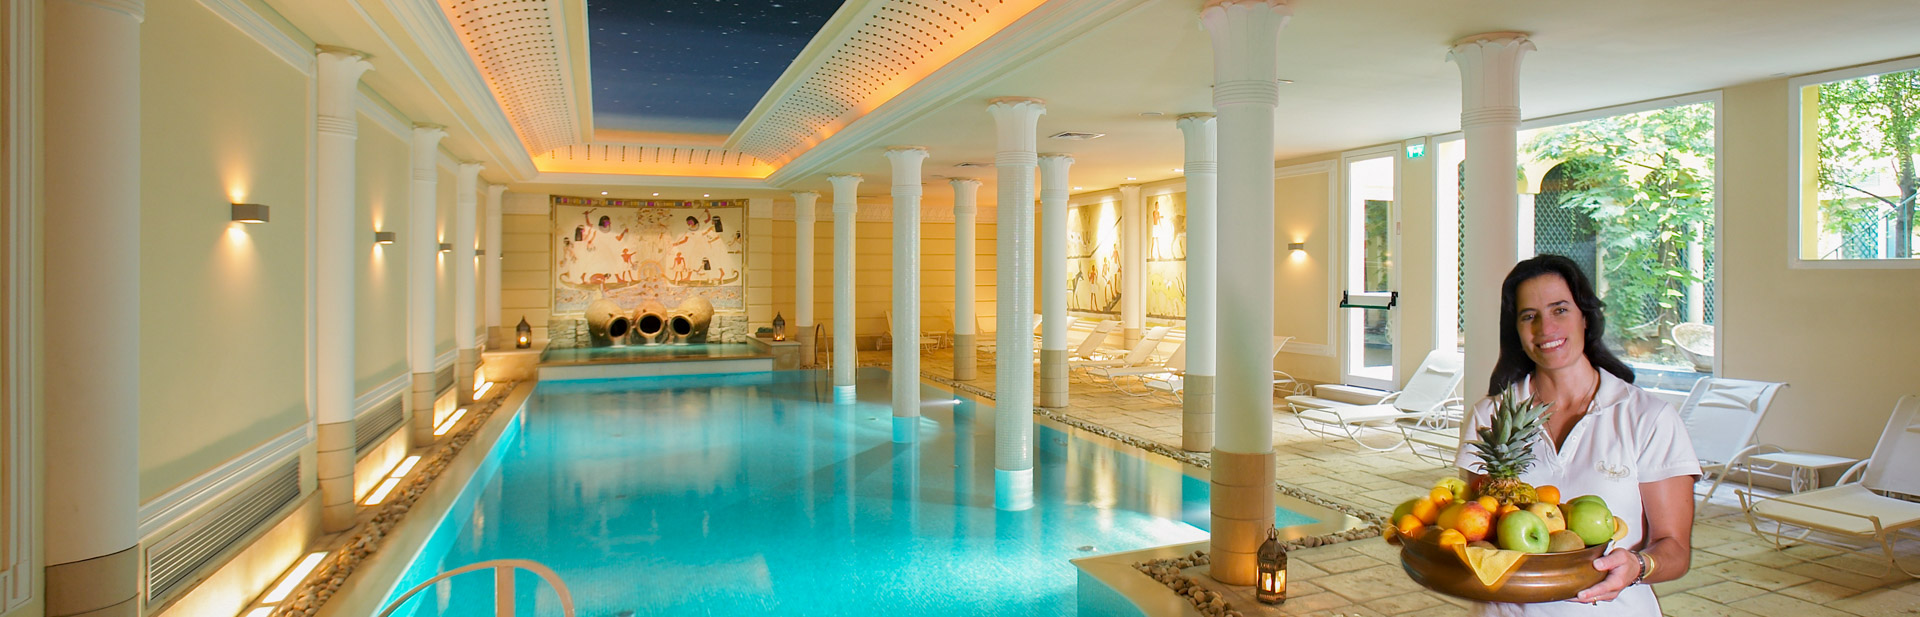 27 Roman-Style Swimming-Pool Gym Steam And Sauna  Decor23